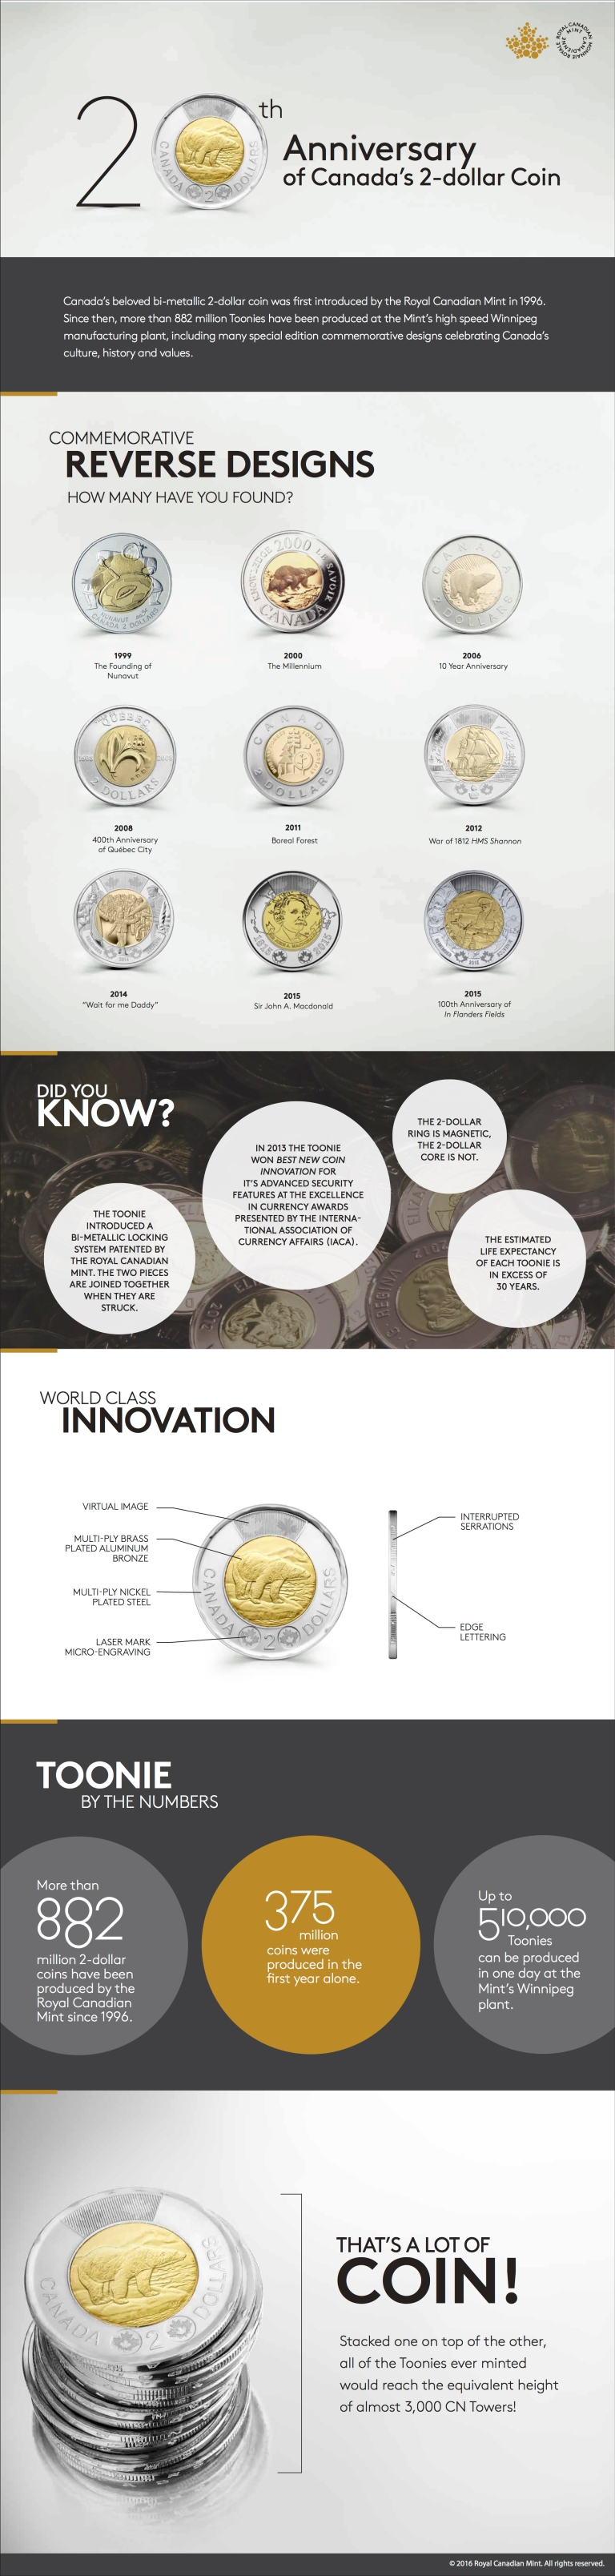 (Infographic: Royal Canadian Mint)